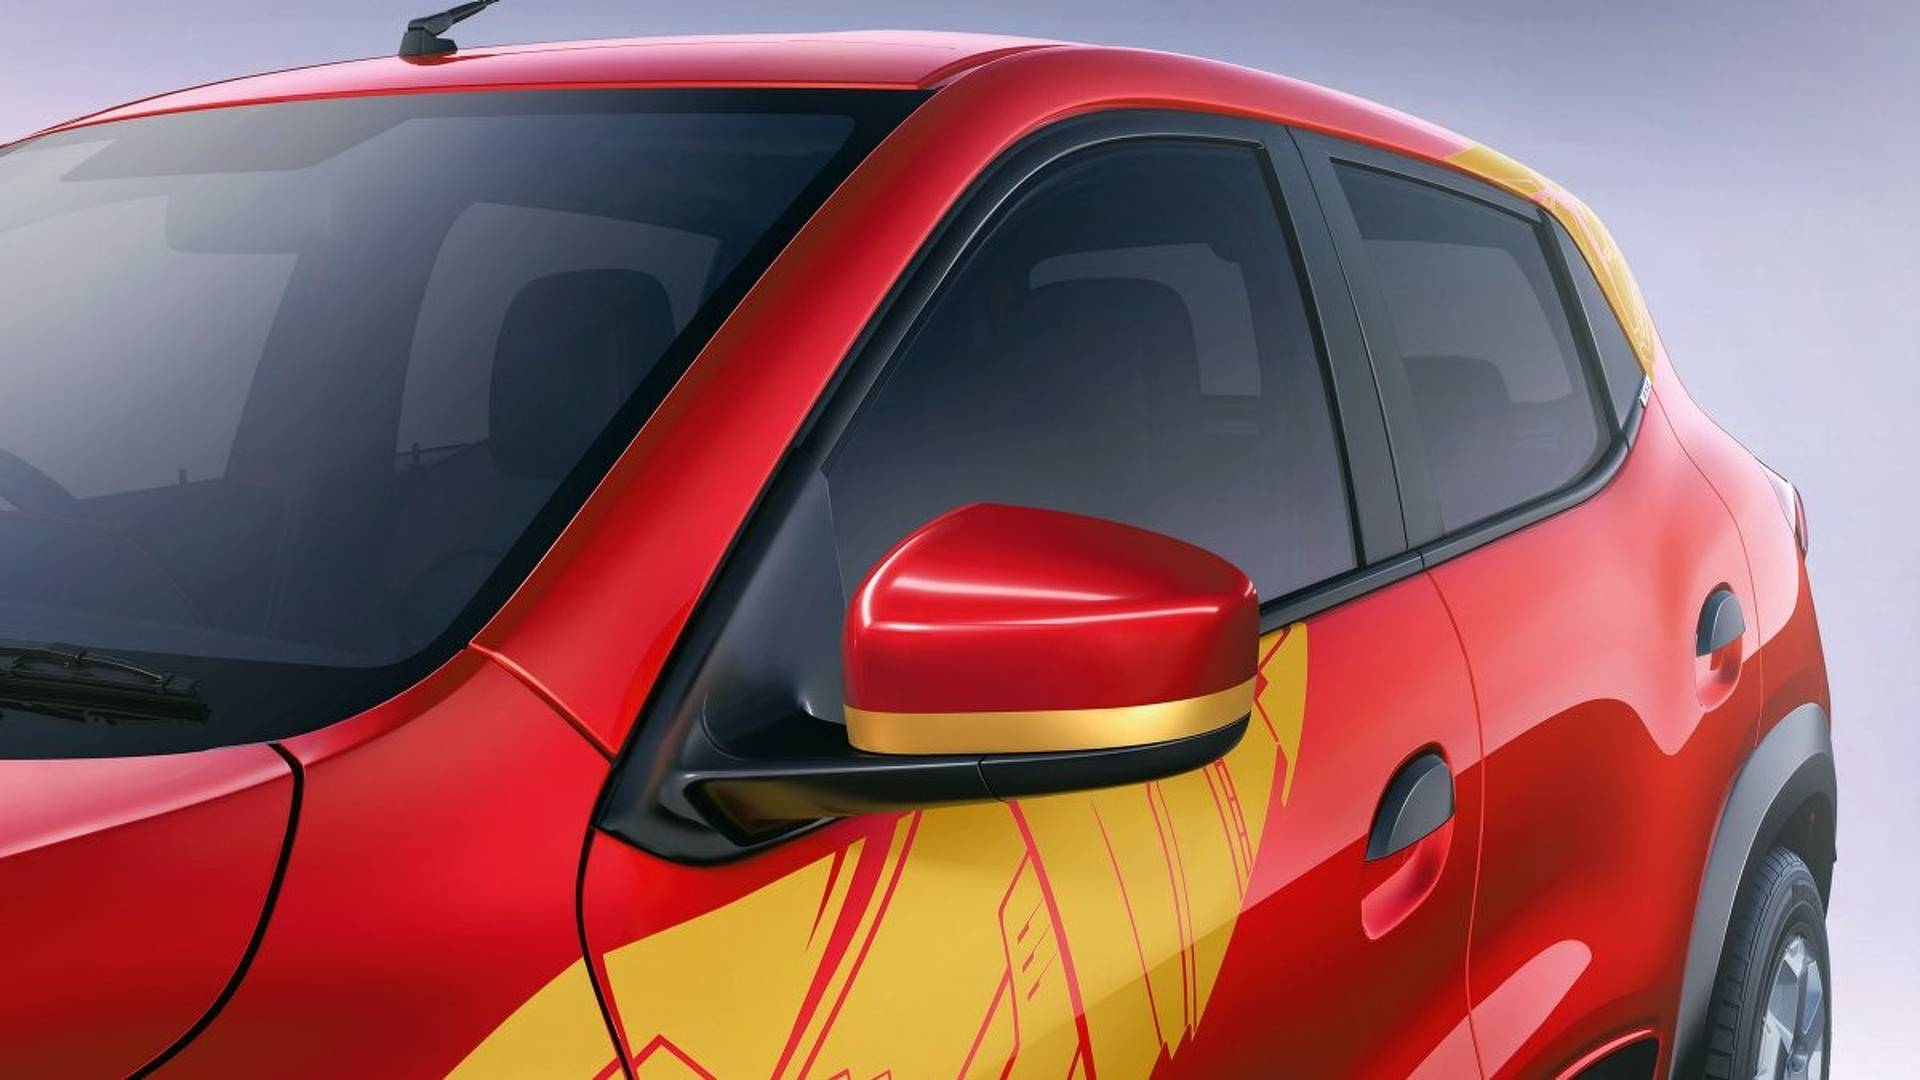 renault-kwid-superhero-crossovers (8)